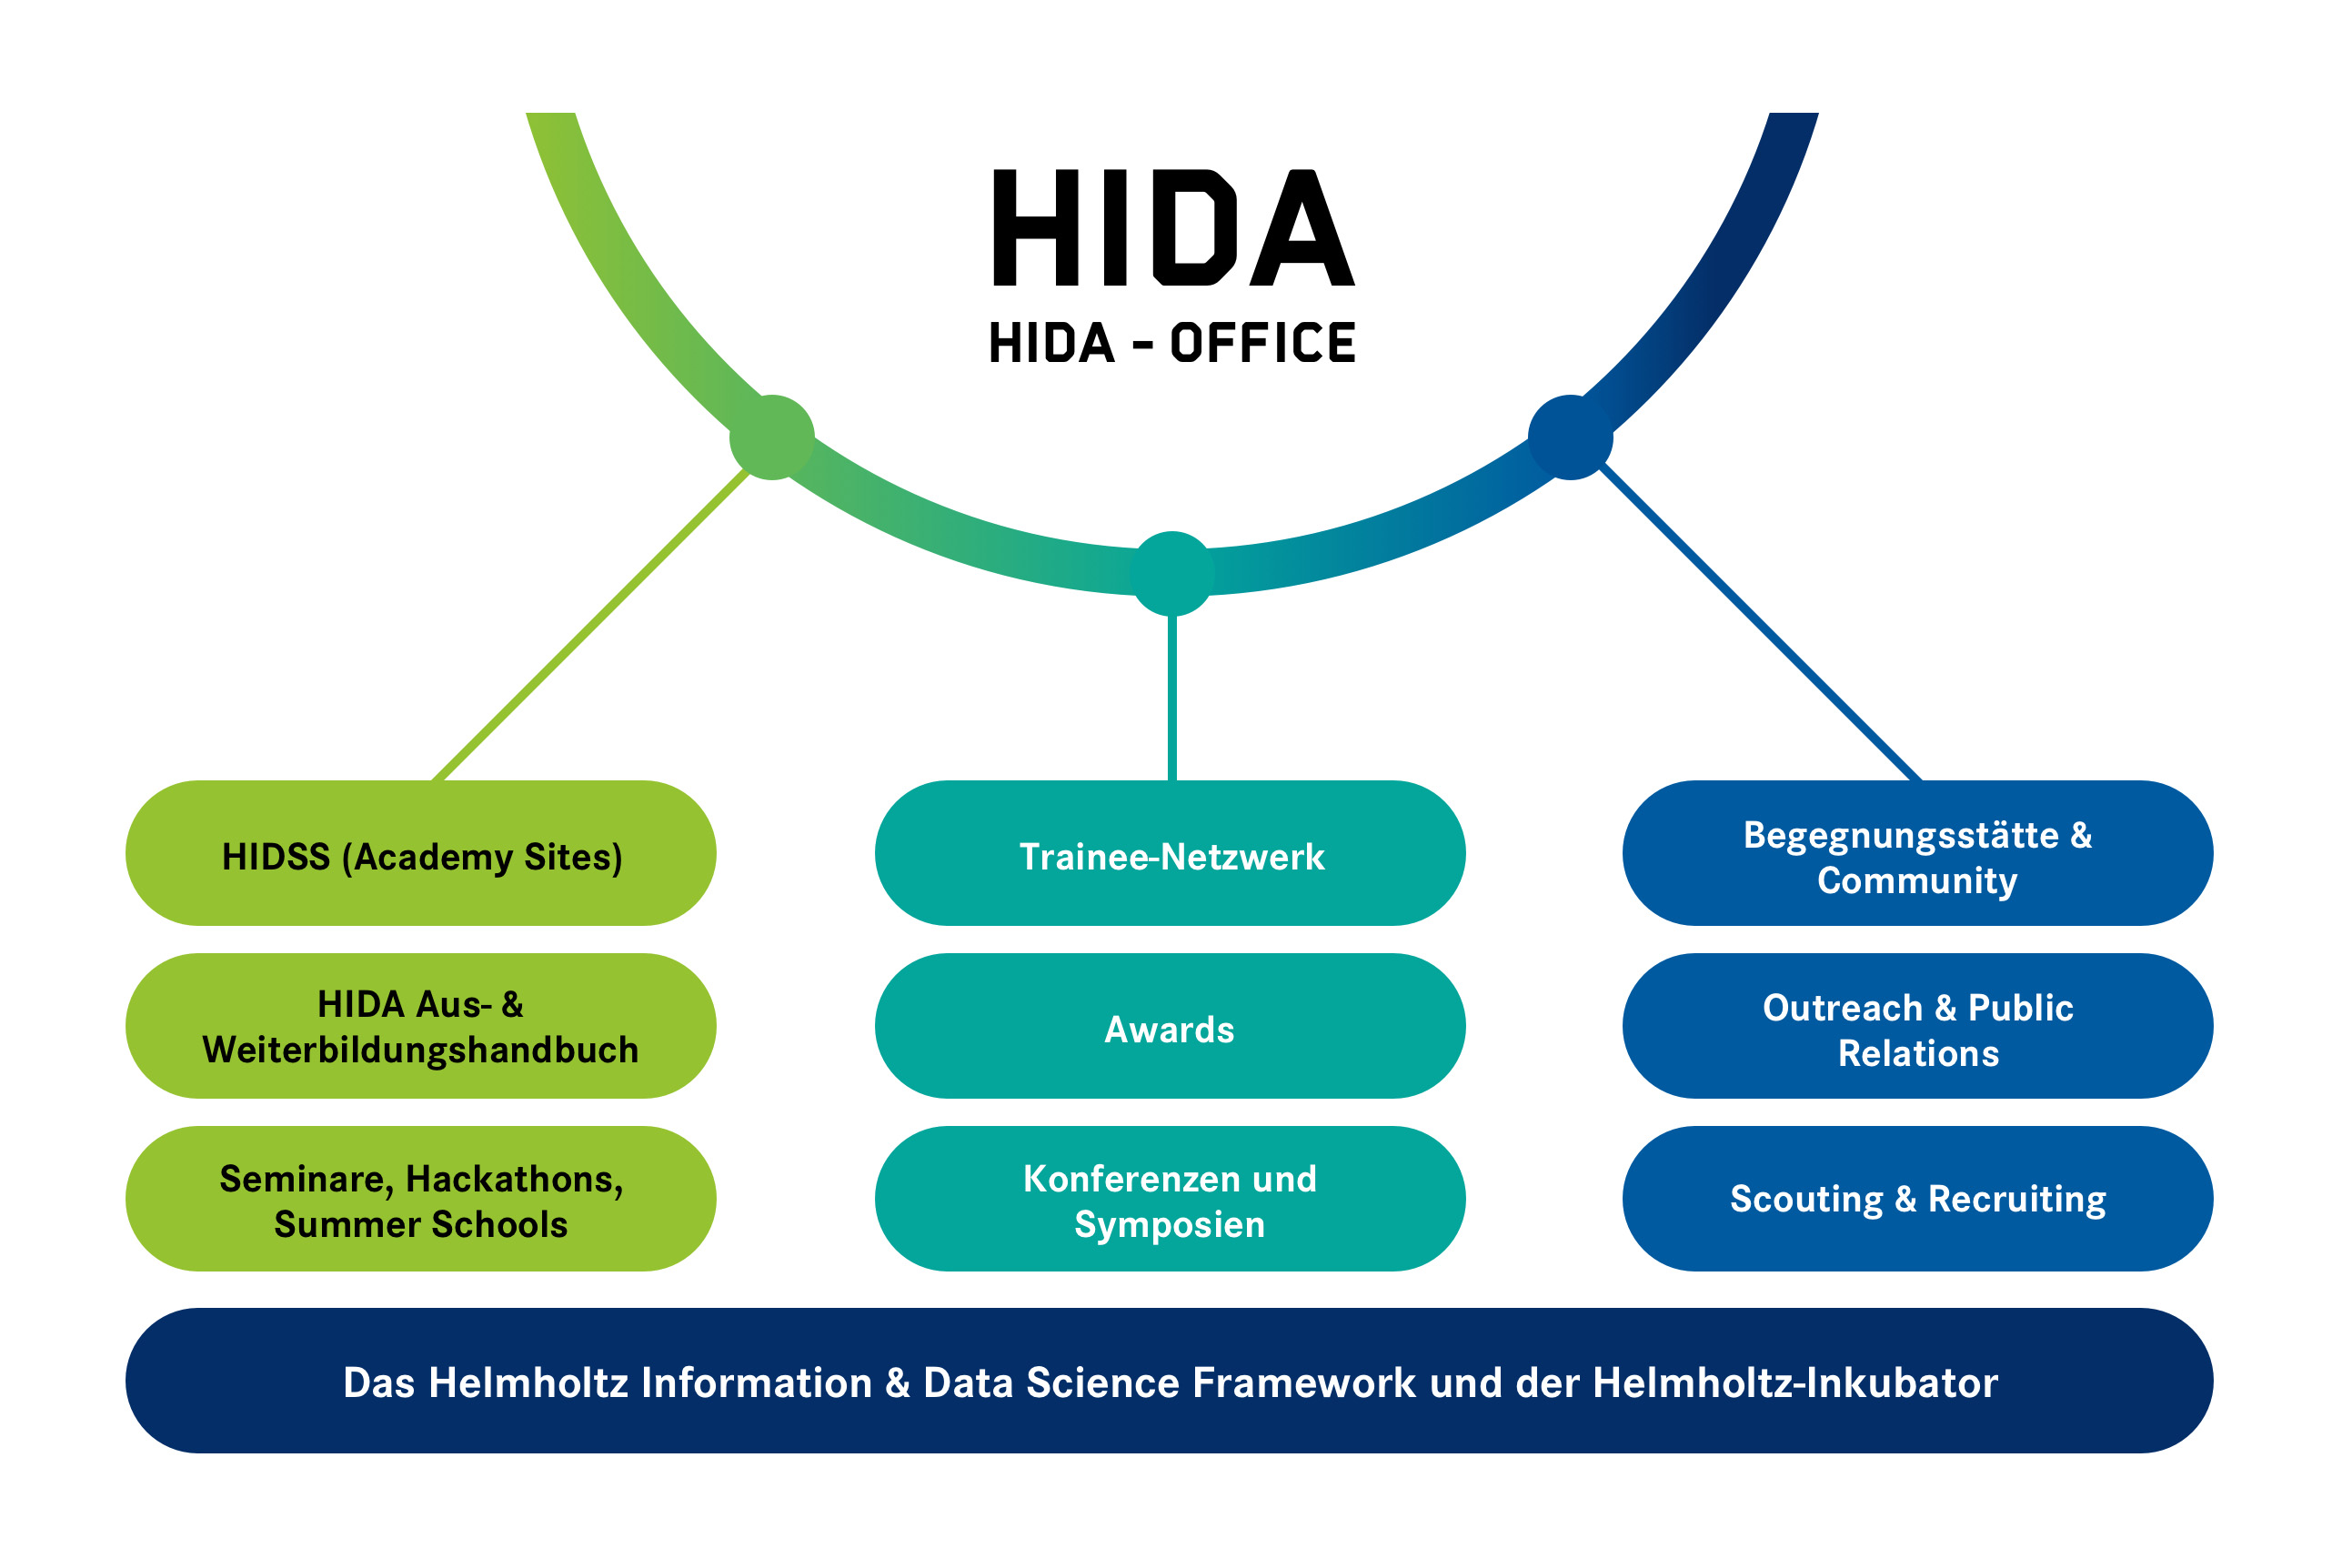 Über HIDA - Helmholtz Information & Data Science Academy